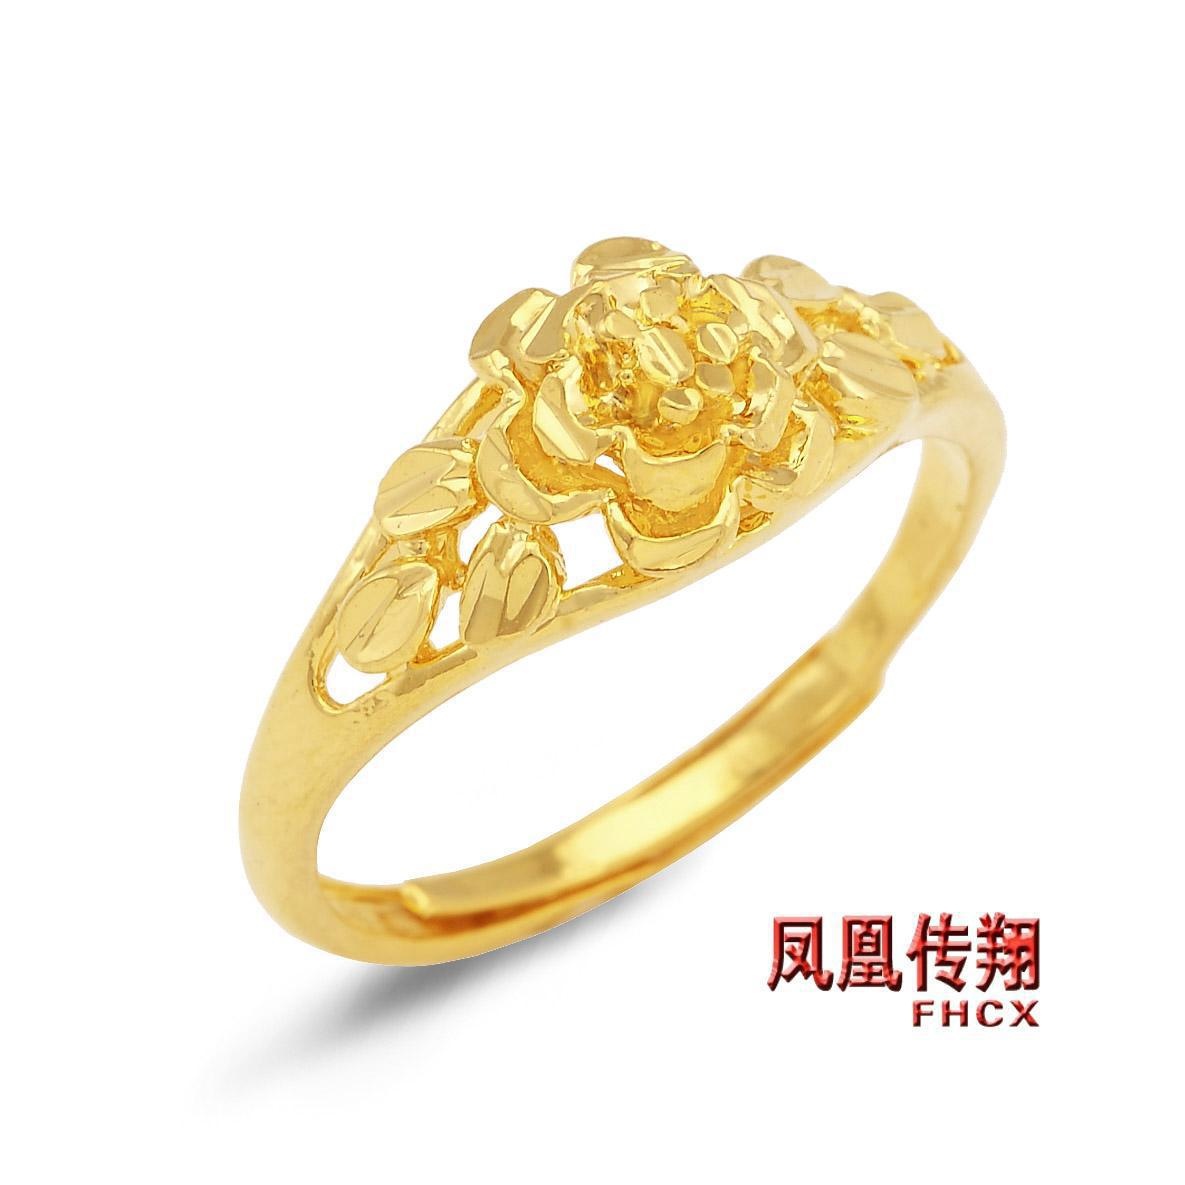 a004 ms ring gold plated flowers female wedding - Wedding Rings For Women Gold